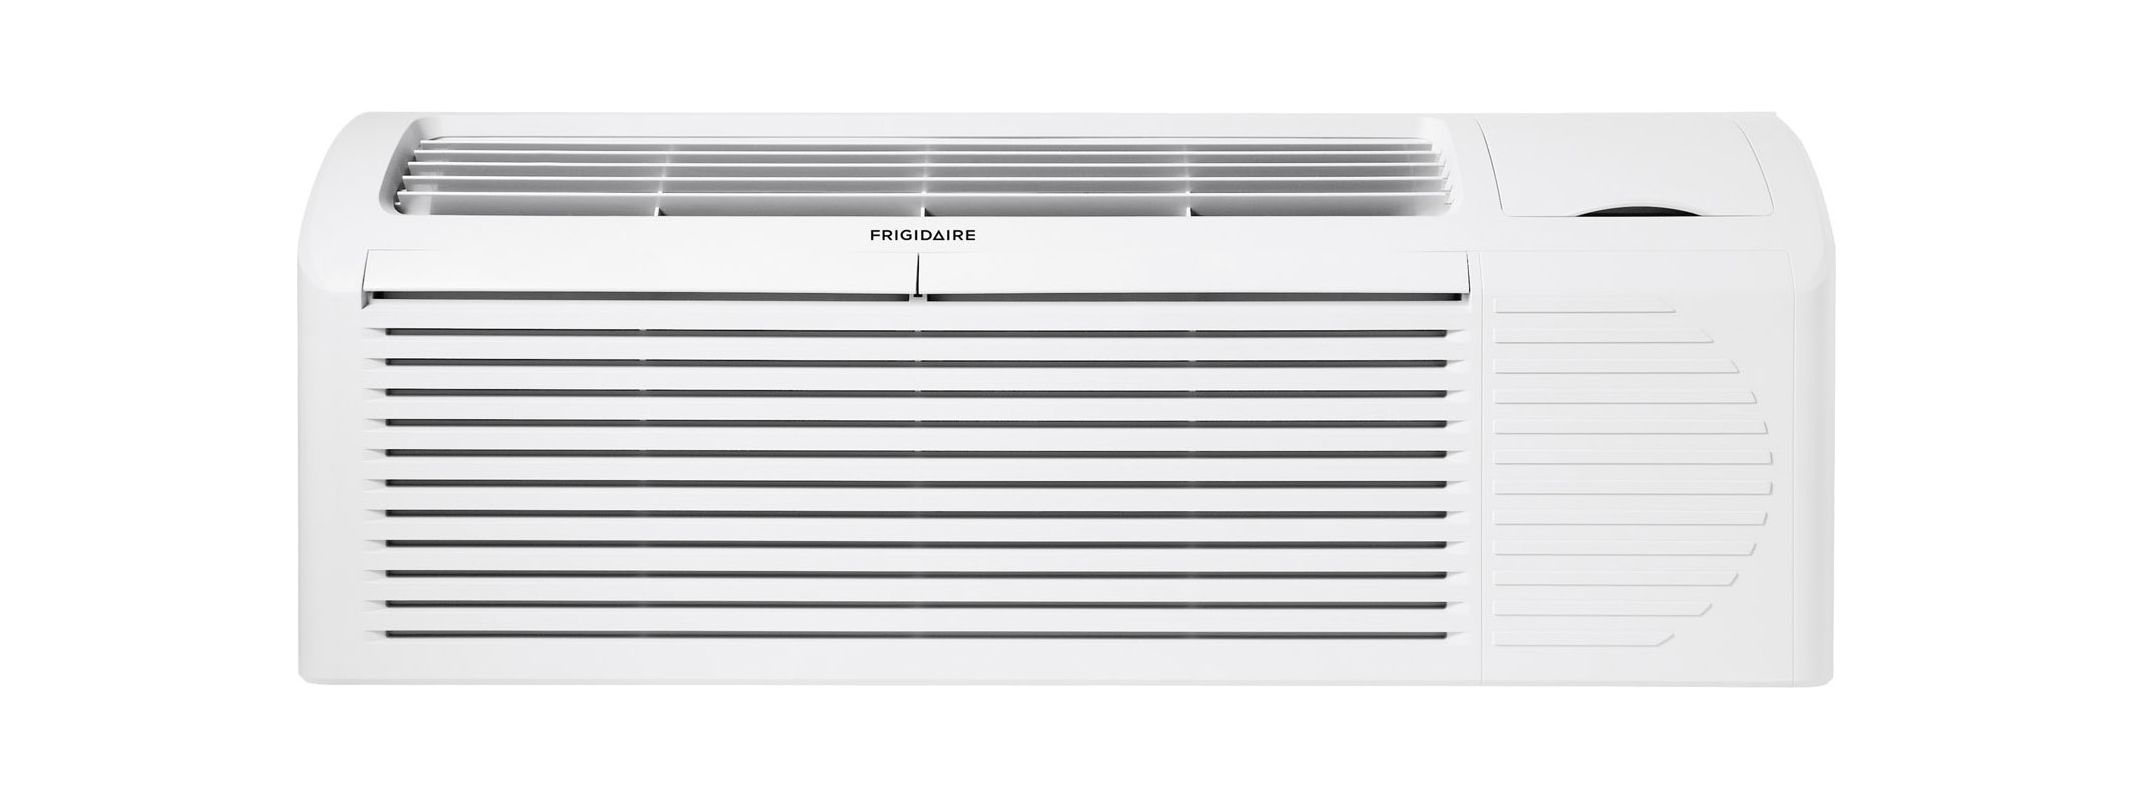 Frigidaire FRP90PTT3R 9,300 BTU 265 Volt Packaged Terminal Air Conditioner (PTAC photo